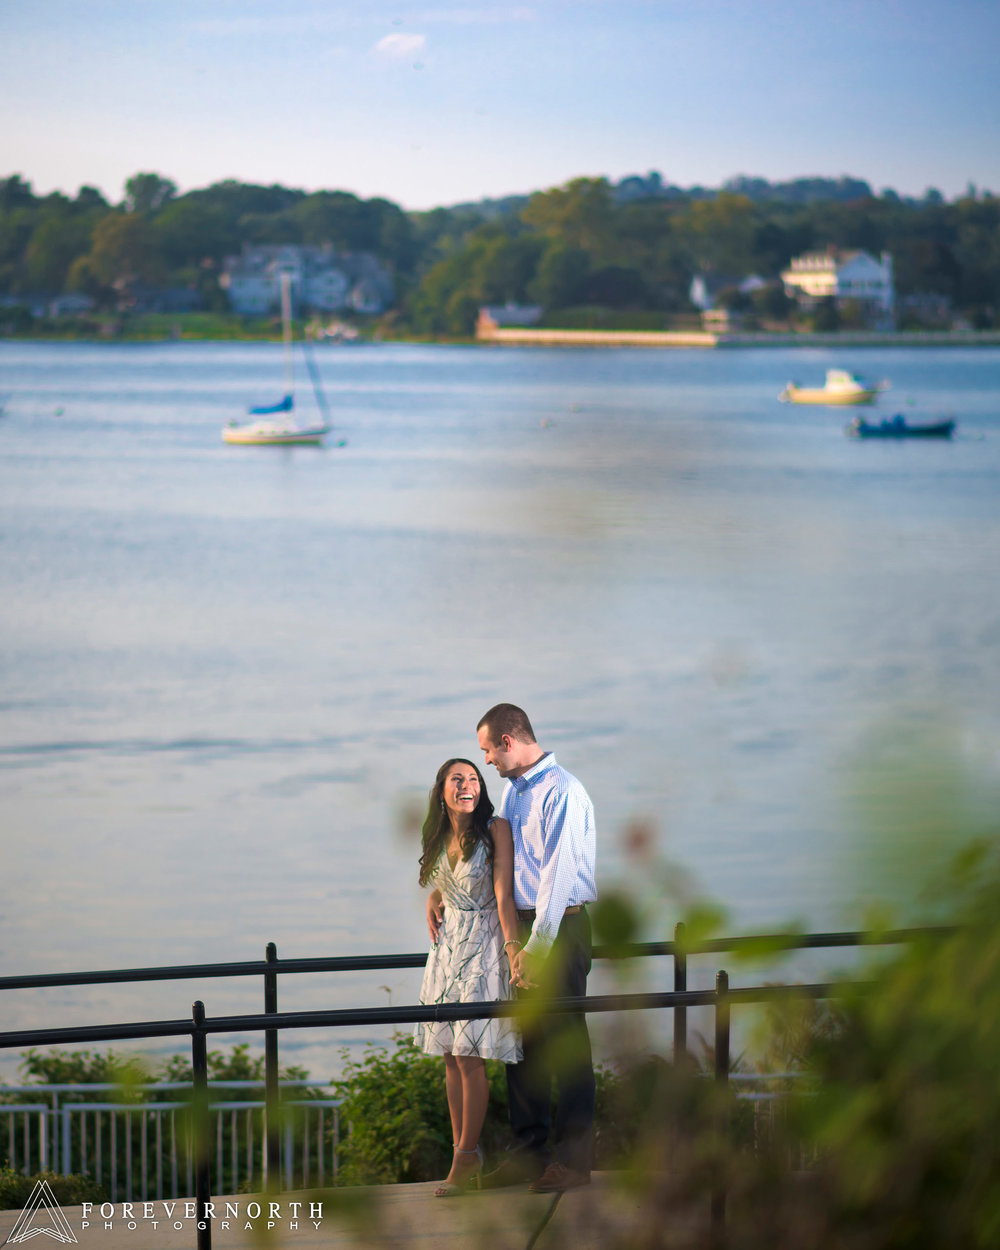 Through the bushes, the couple laugh with each other in red bank